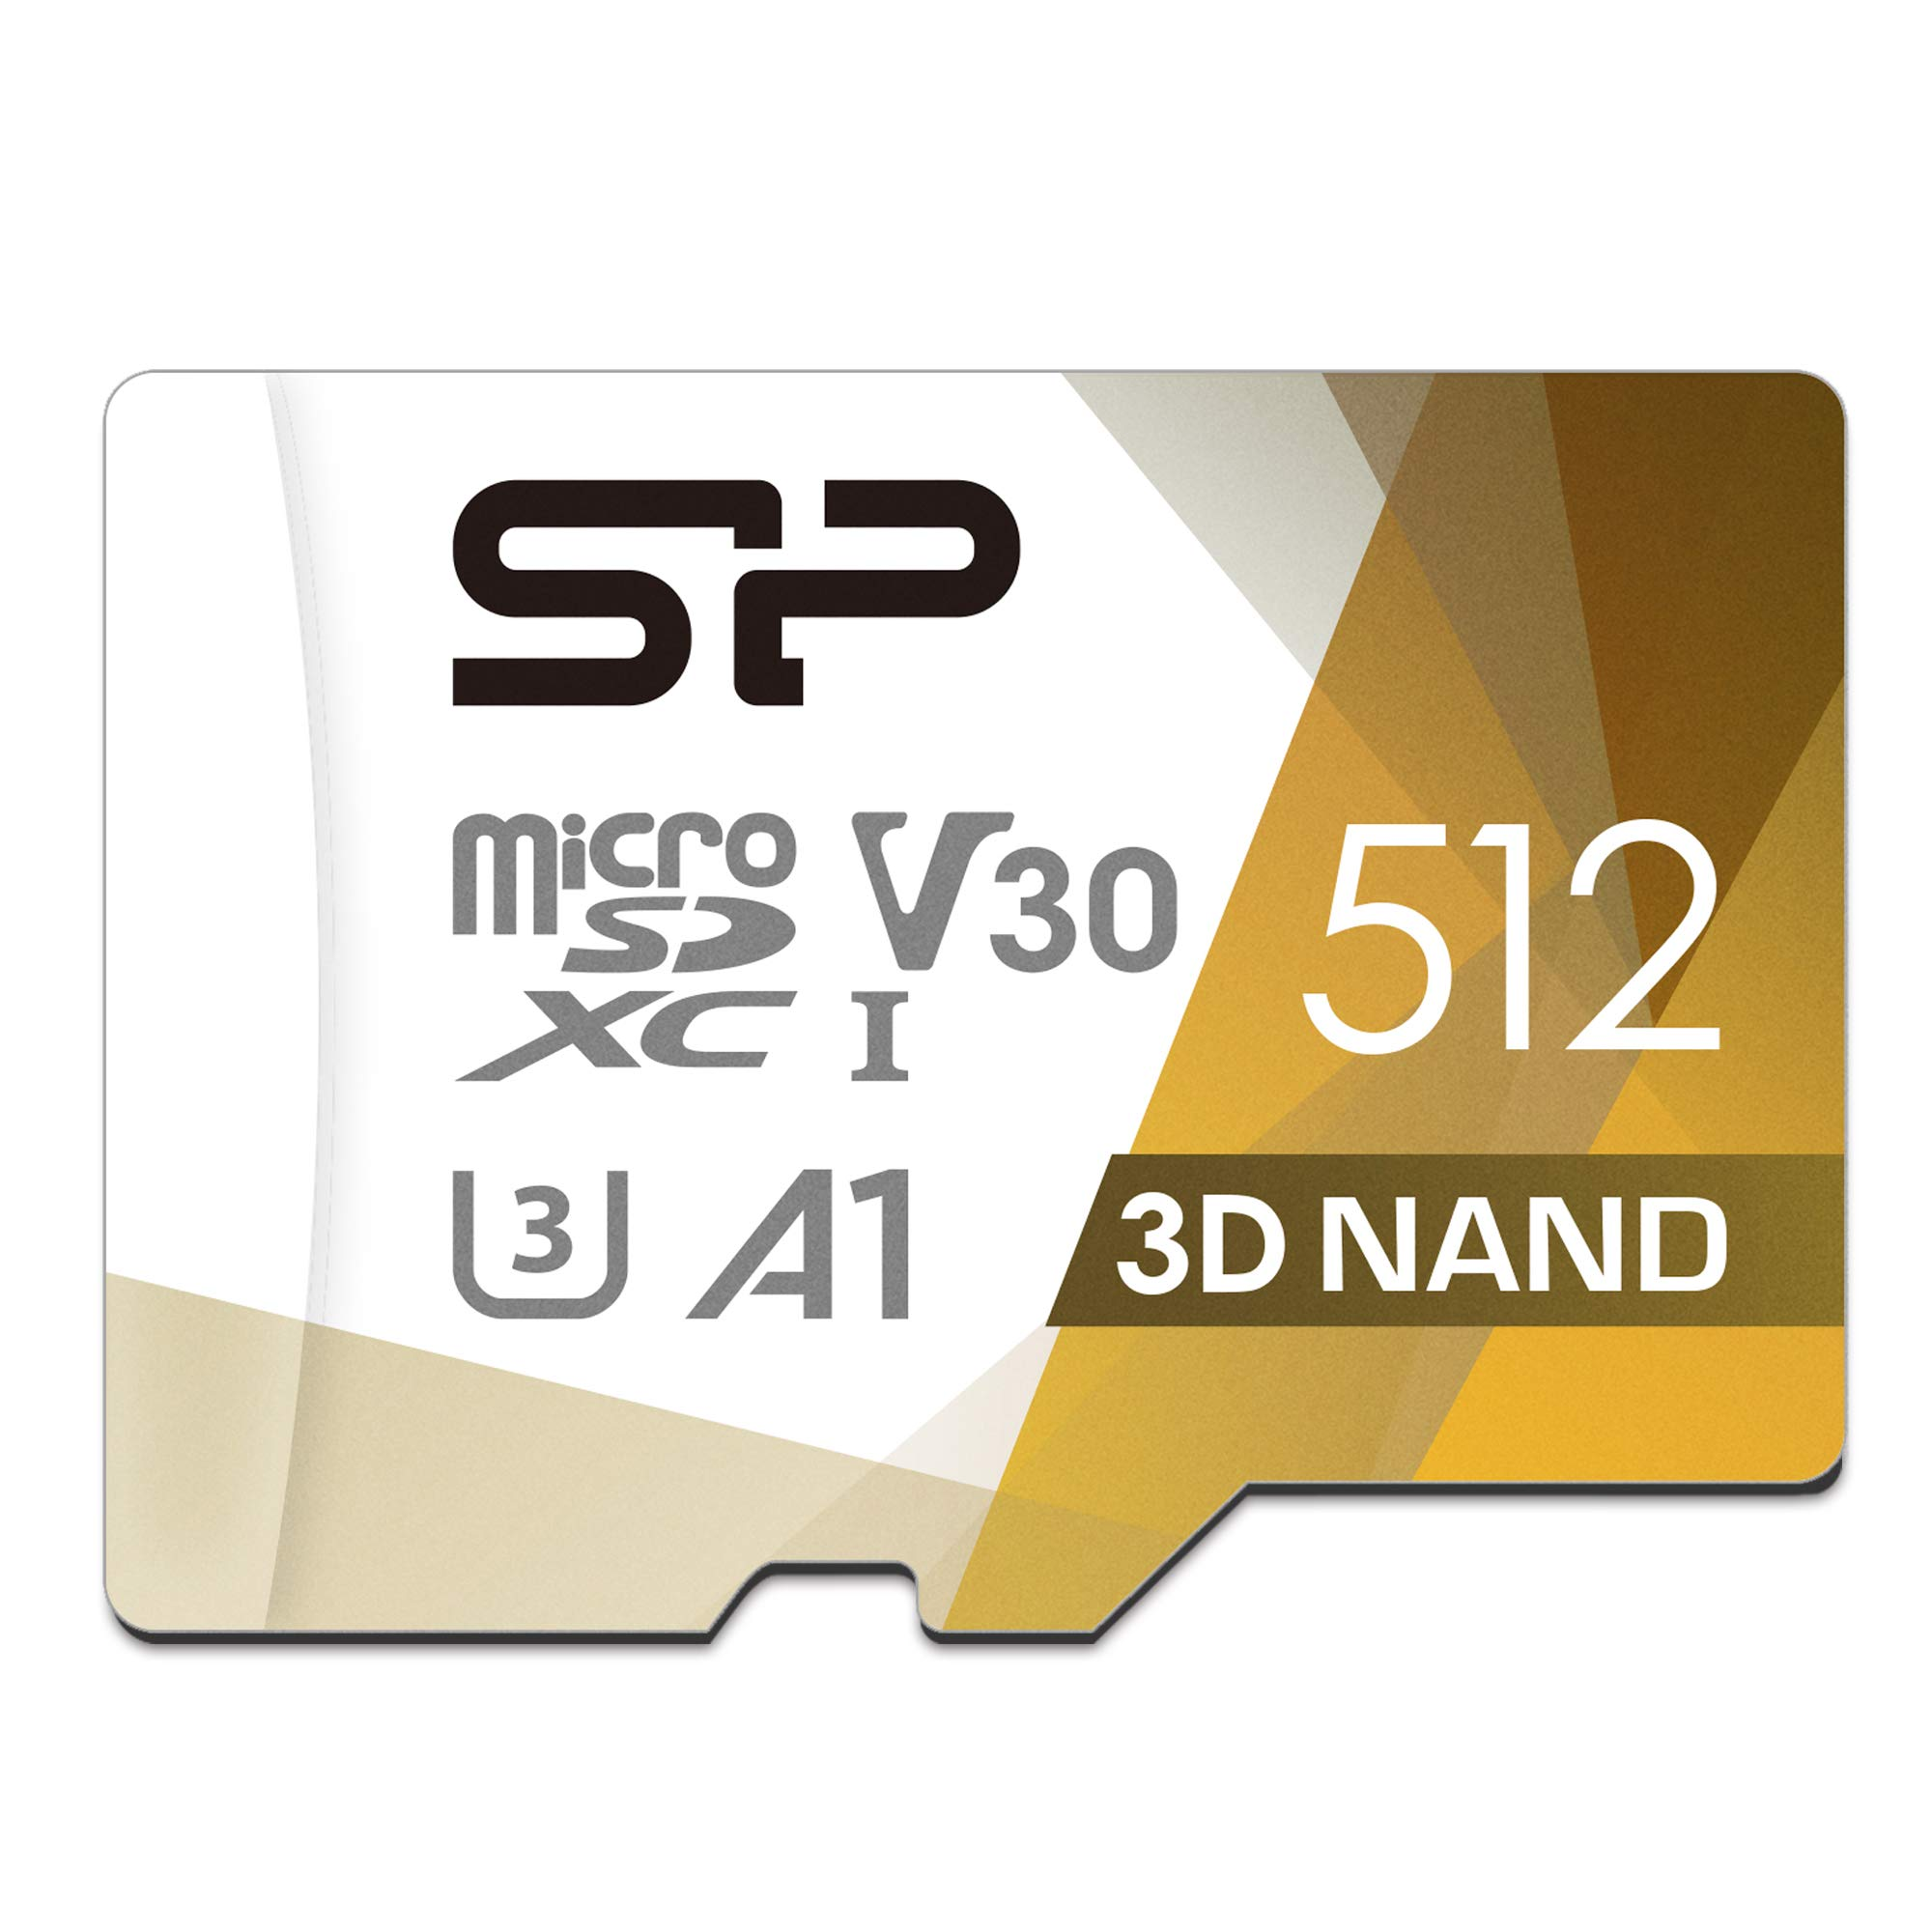 Silicon Power 512GB R/W up to 100/ 80MB/s Superior Pro microSDXC UHS-I (U3), V30 4K A1, High Speed MicroSD Card with Adapter by SP Silicon Power